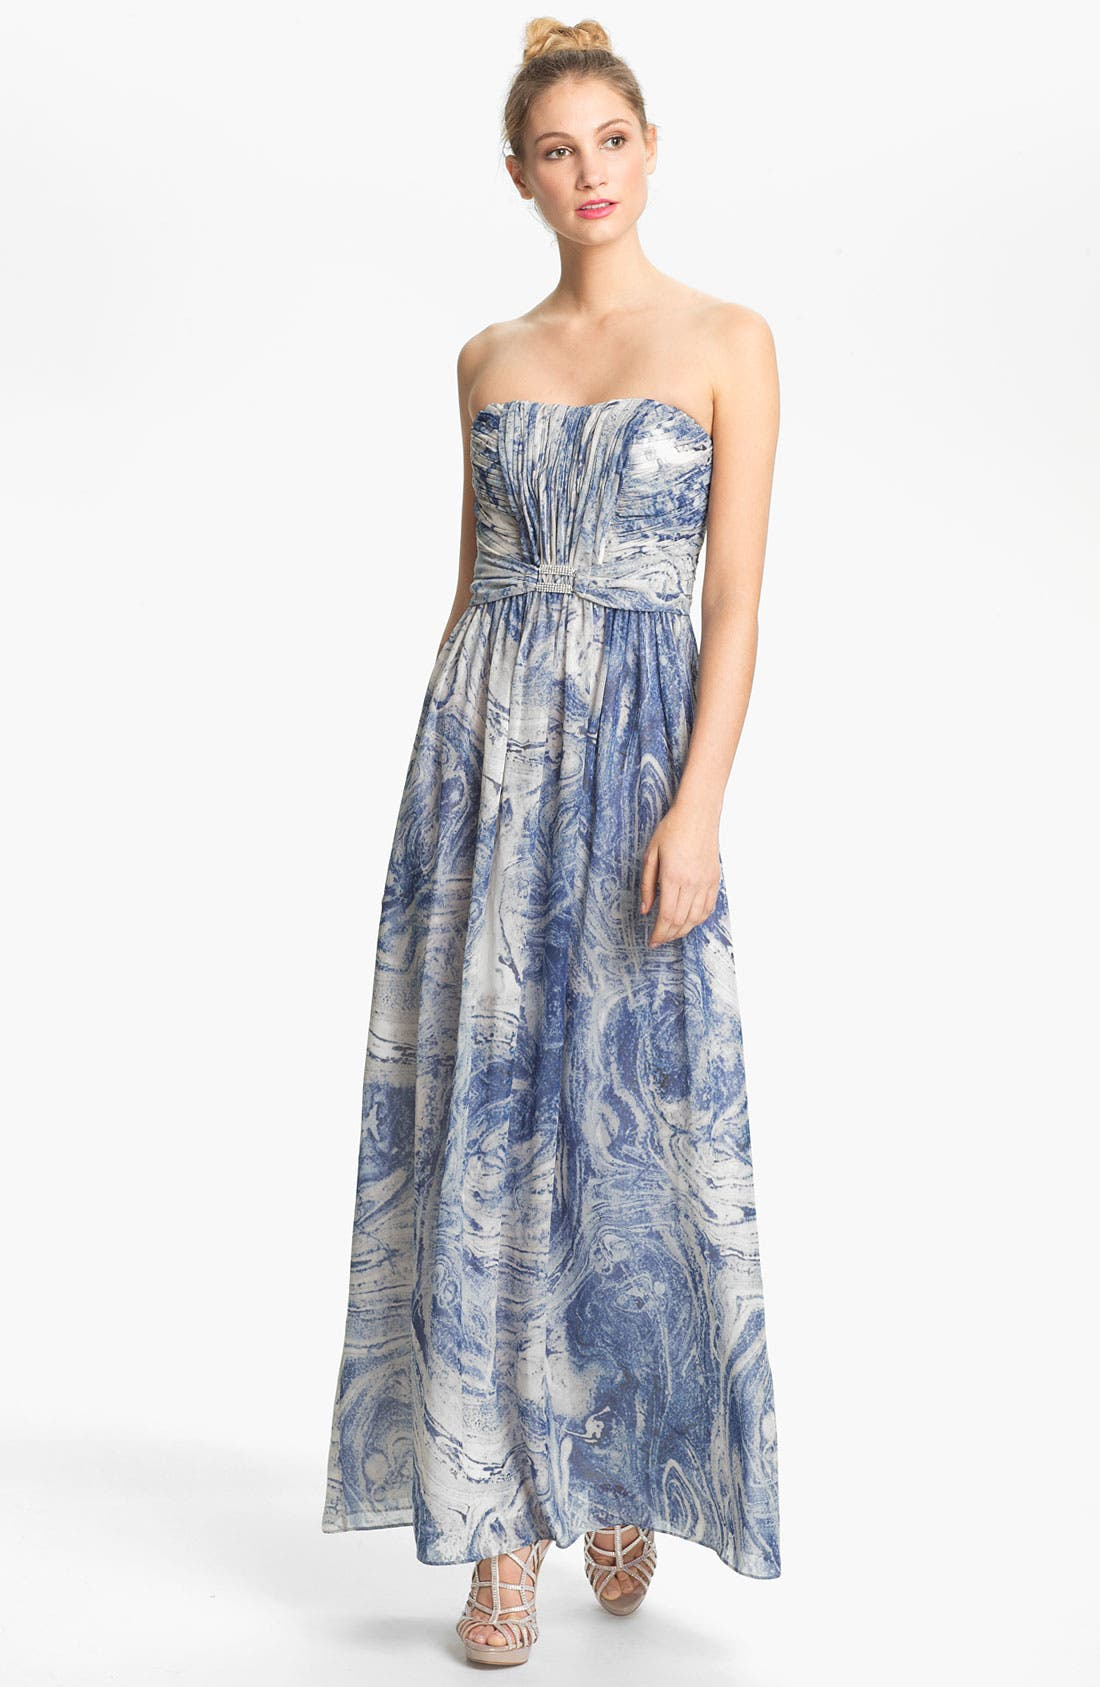 Main Image - Calvin Klein Embellished Print Strapless Chiffon Gown